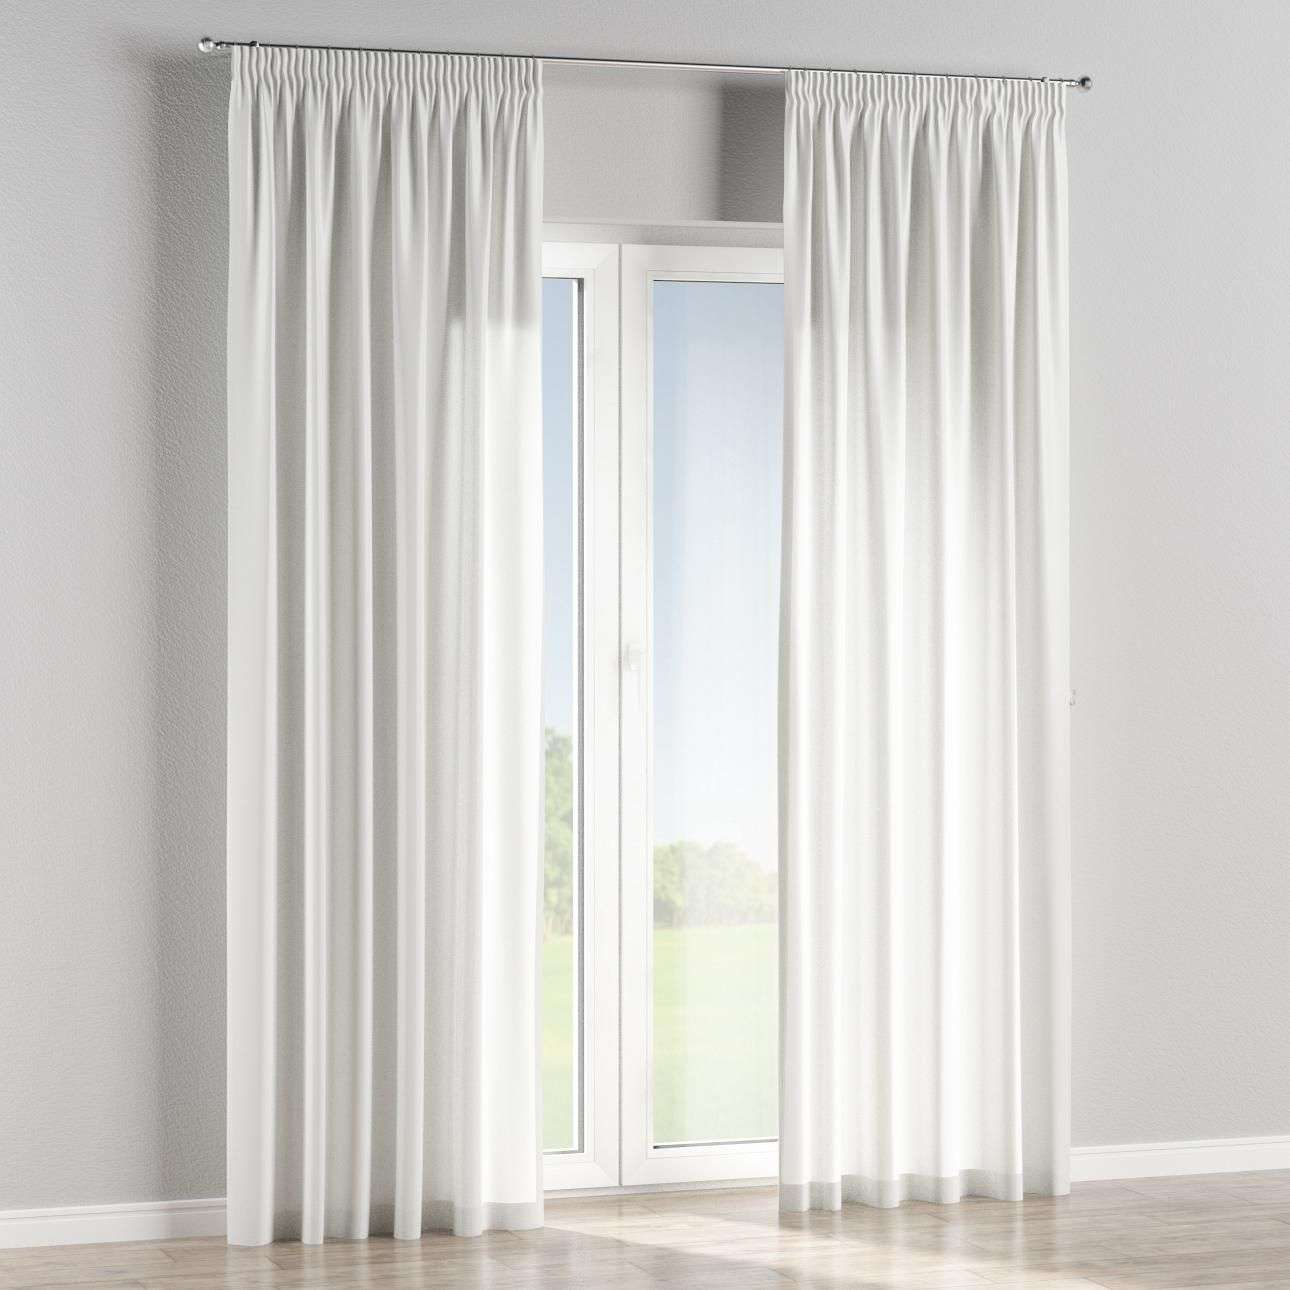 Pencil pleat curtains in collection Marina, fabric: 140-14